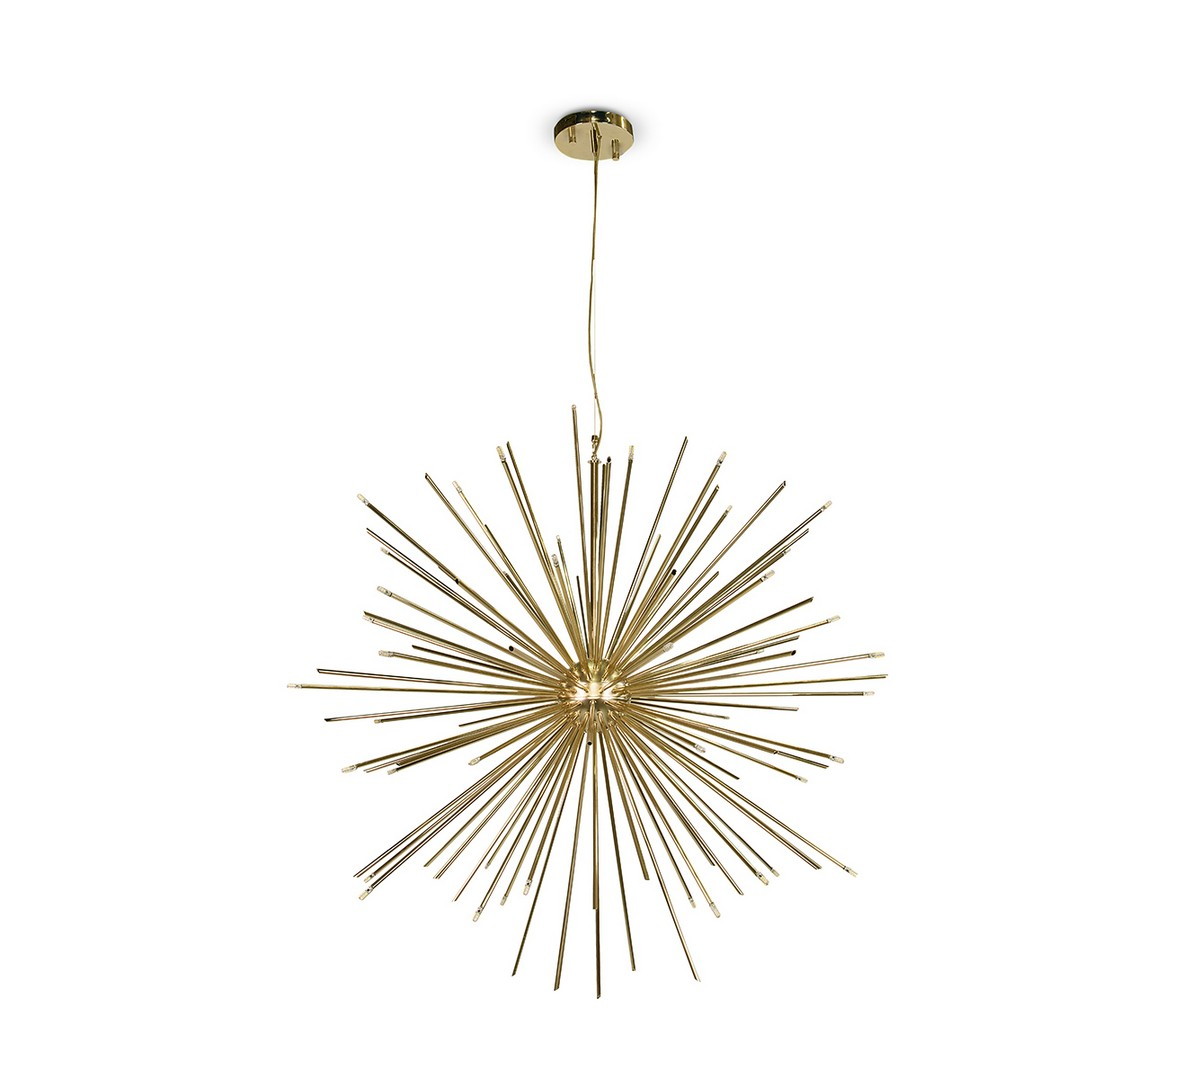 Exclusive Lighting Designs You Will Love (Part III) exclusive lighting designs Exclusive Lighting Designs You Will Love (Part III) cannonball suspension lamp